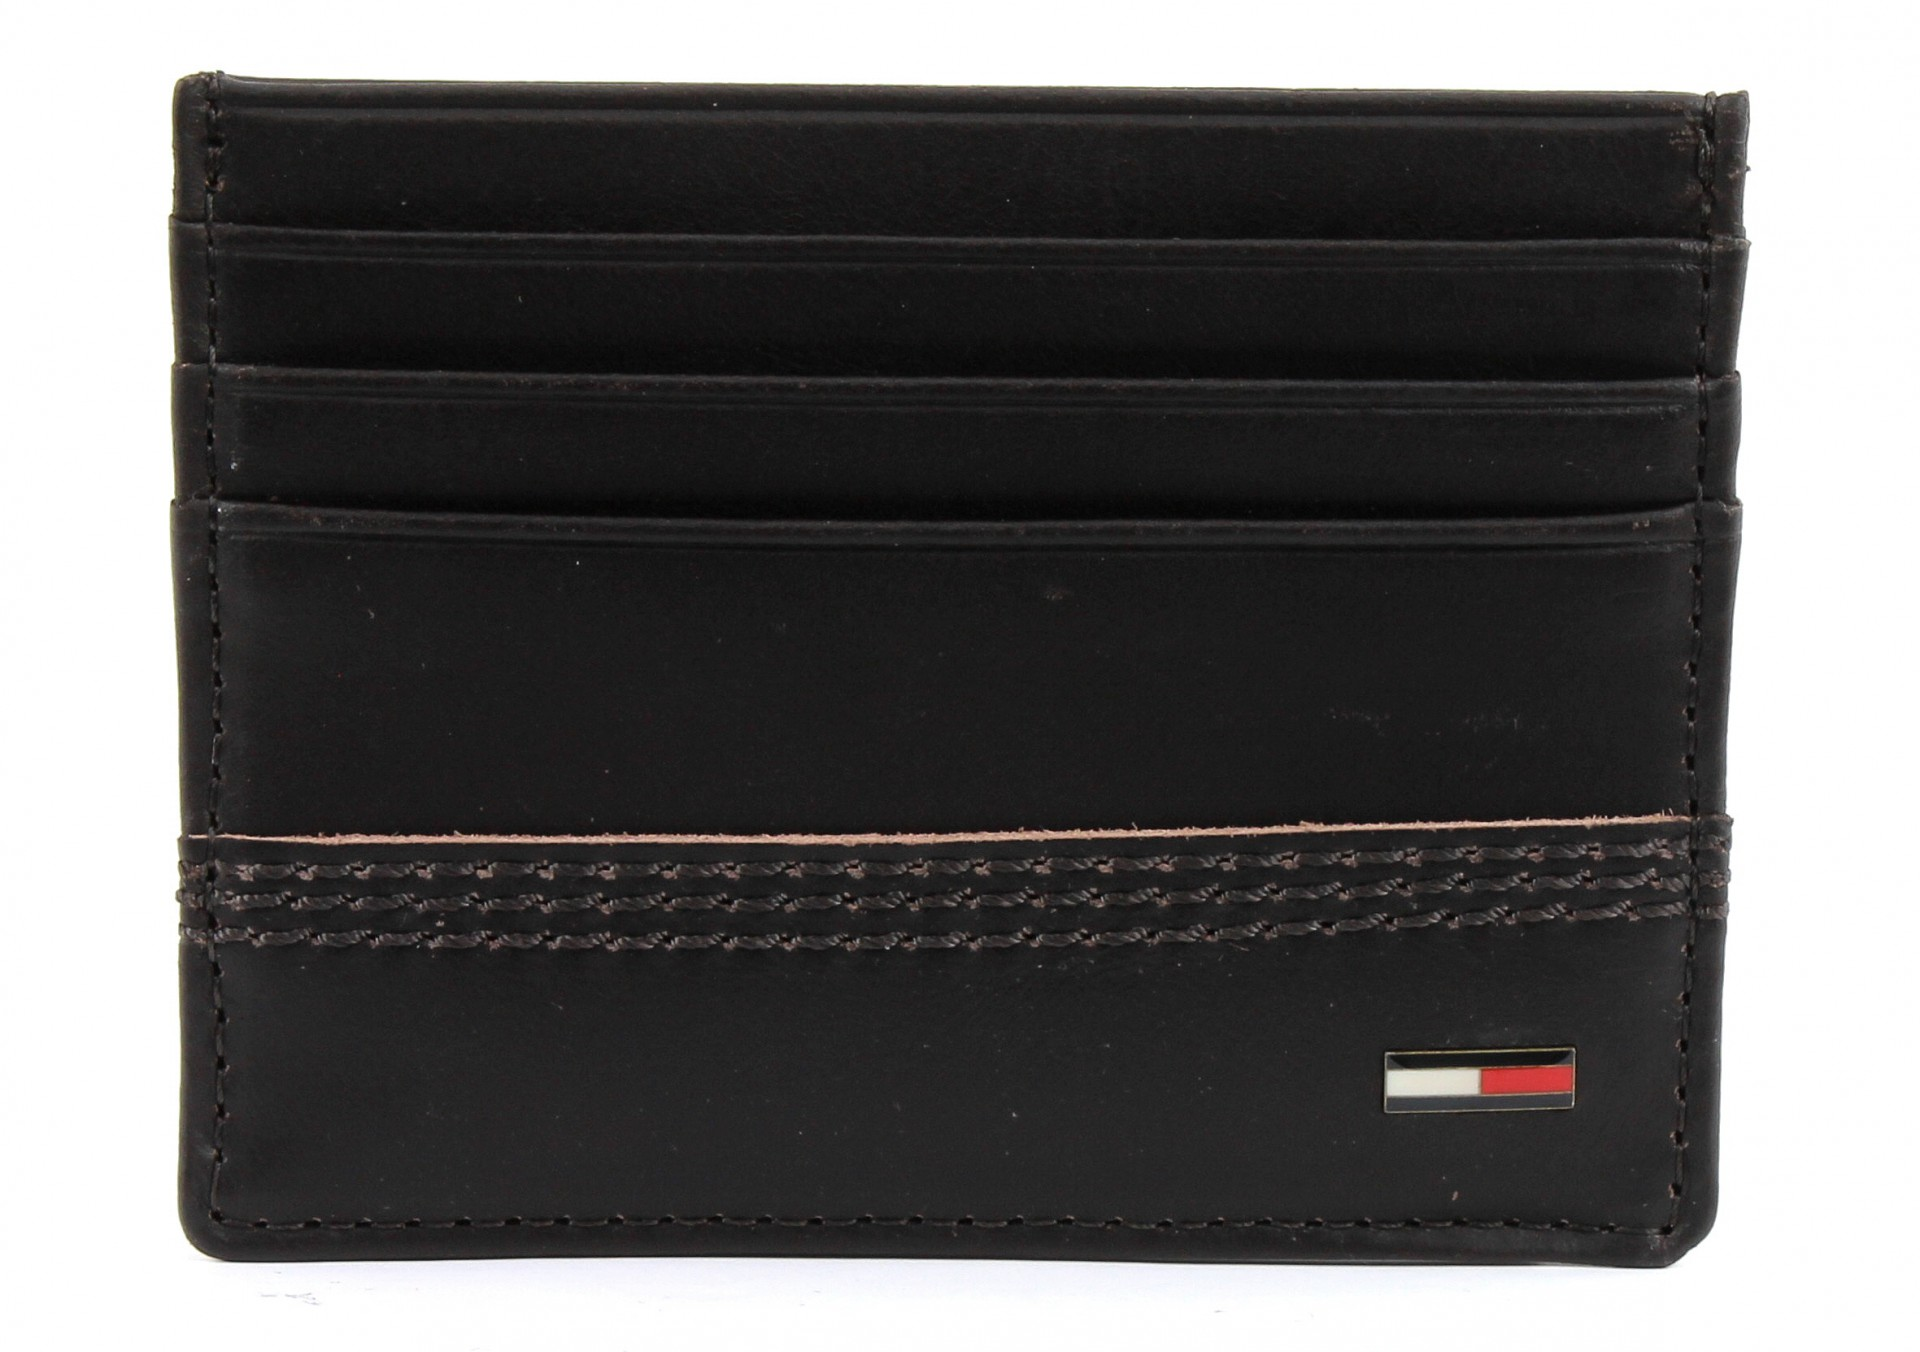 tommy hilfiger tylor cc holder wallet credit card case leather new ebay. Black Bedroom Furniture Sets. Home Design Ideas